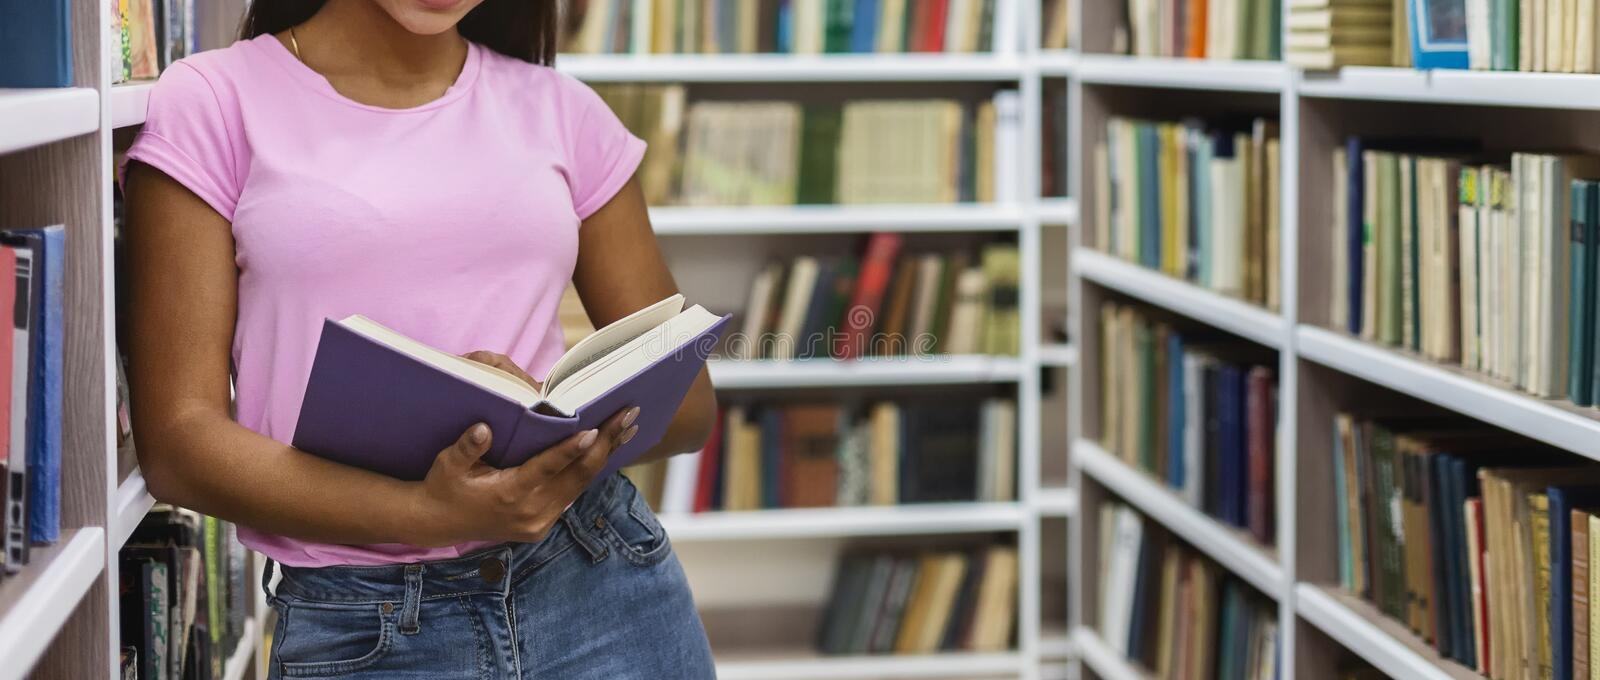 Afro girl holding open book, leaning on bookshelf. Black girl holding open book, leaning on bookshelf at library, copy space stock photo